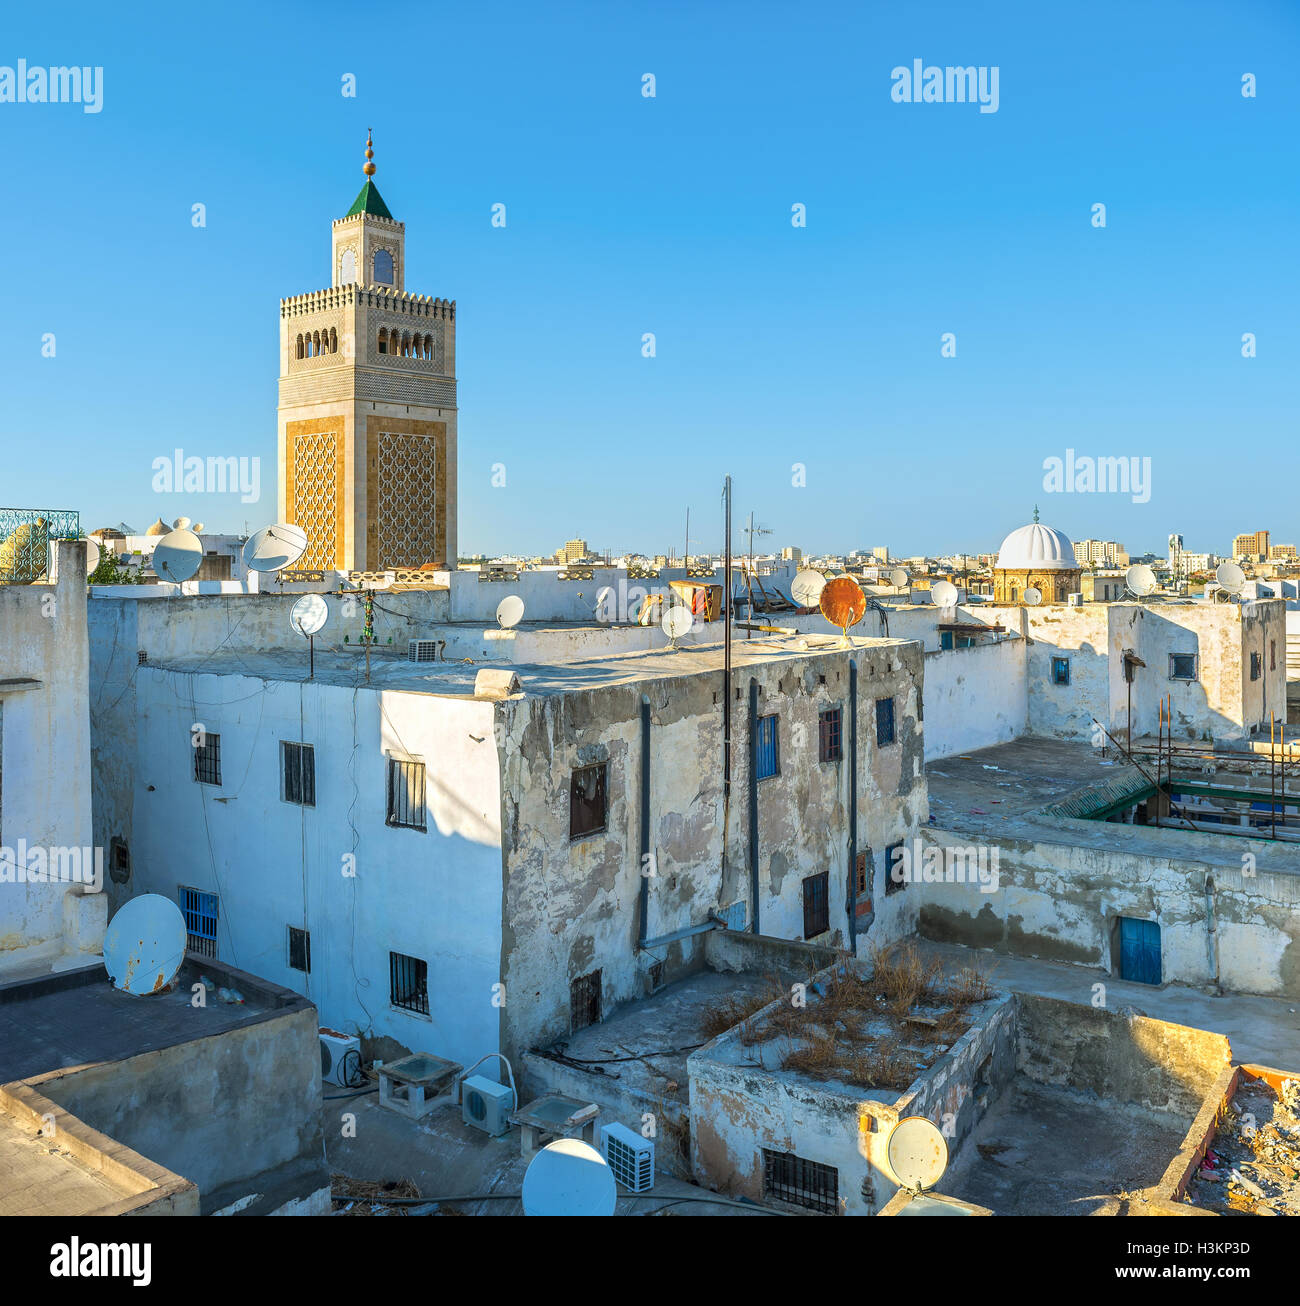 The rectangular minaret of the Great Mosque over the city roofs, Tunis, Tunisia. - Stock Image